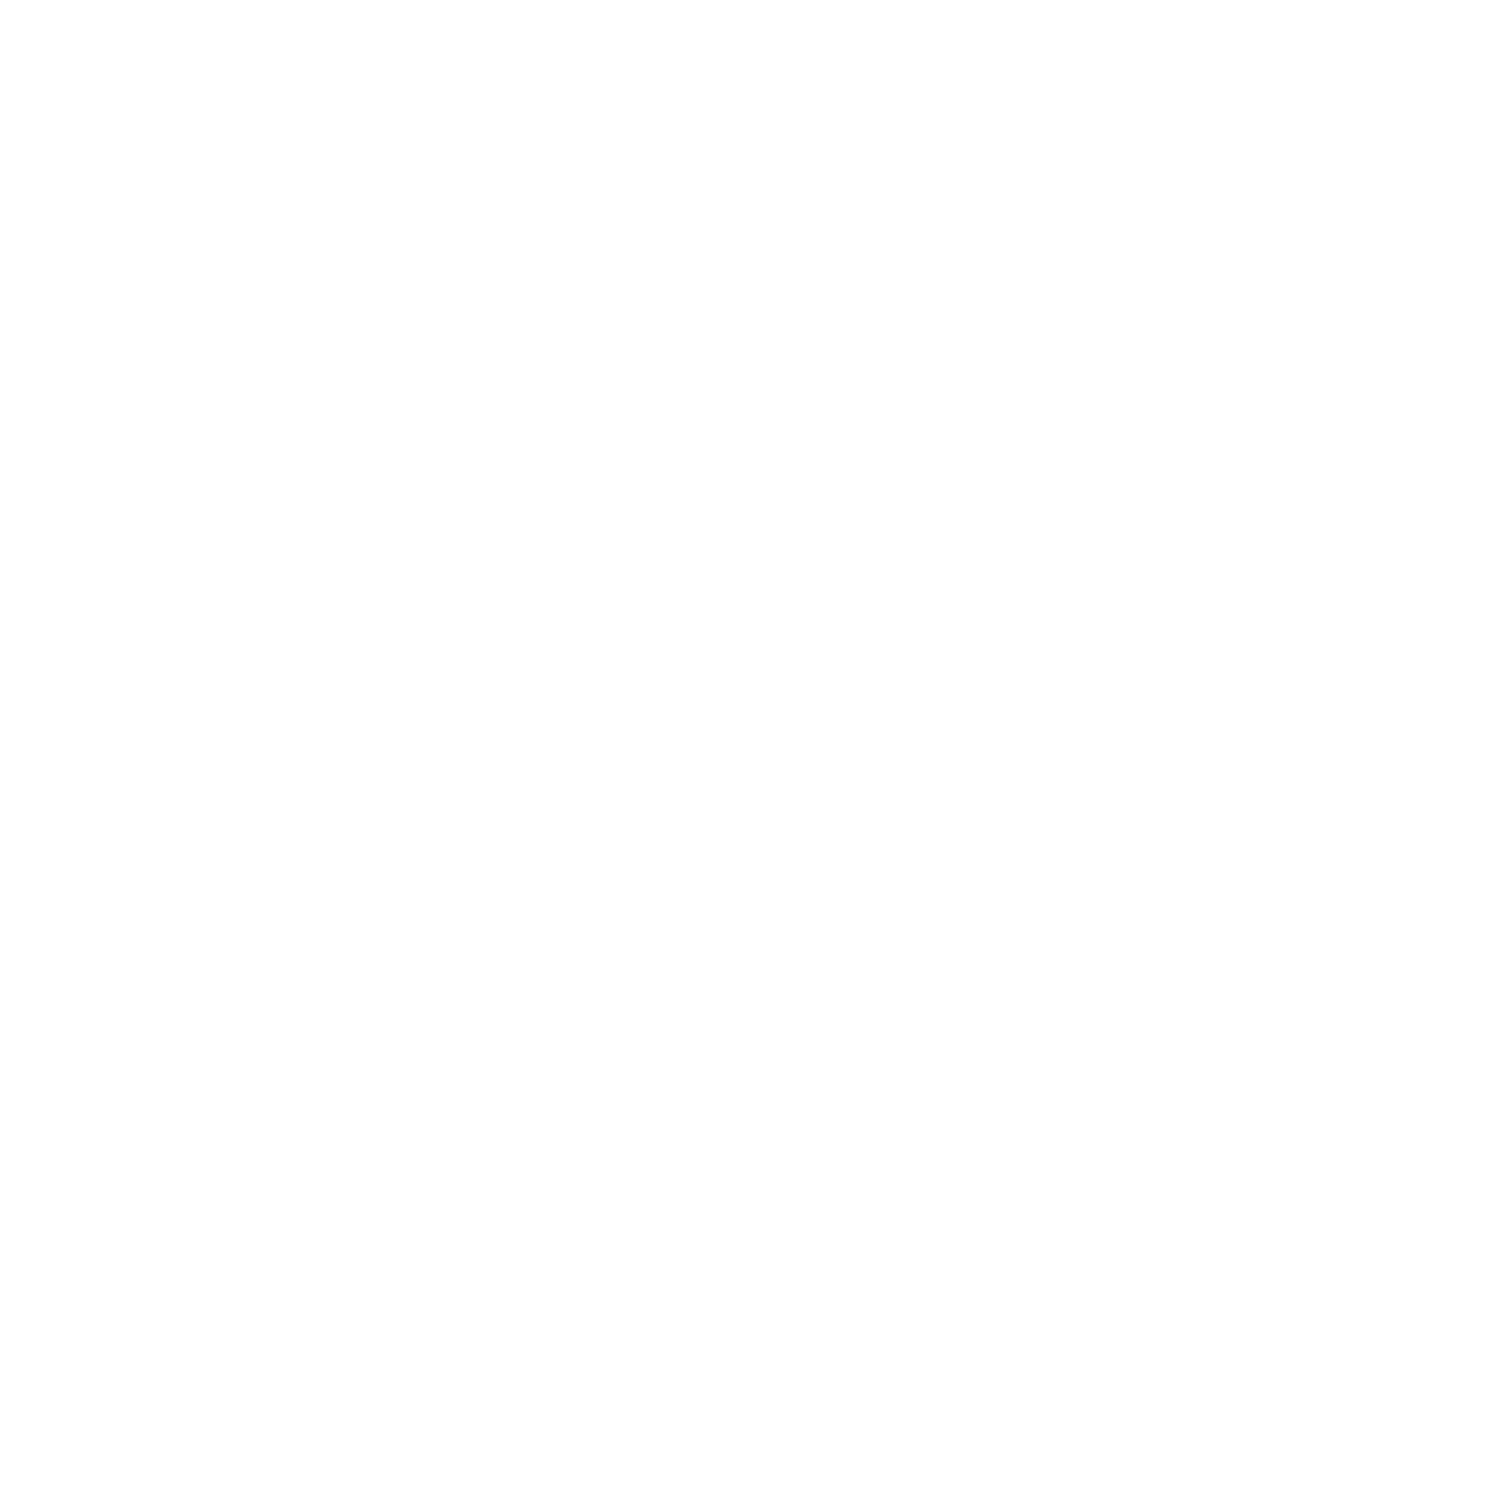 National science foundation logo png. Nsf all white bitmap